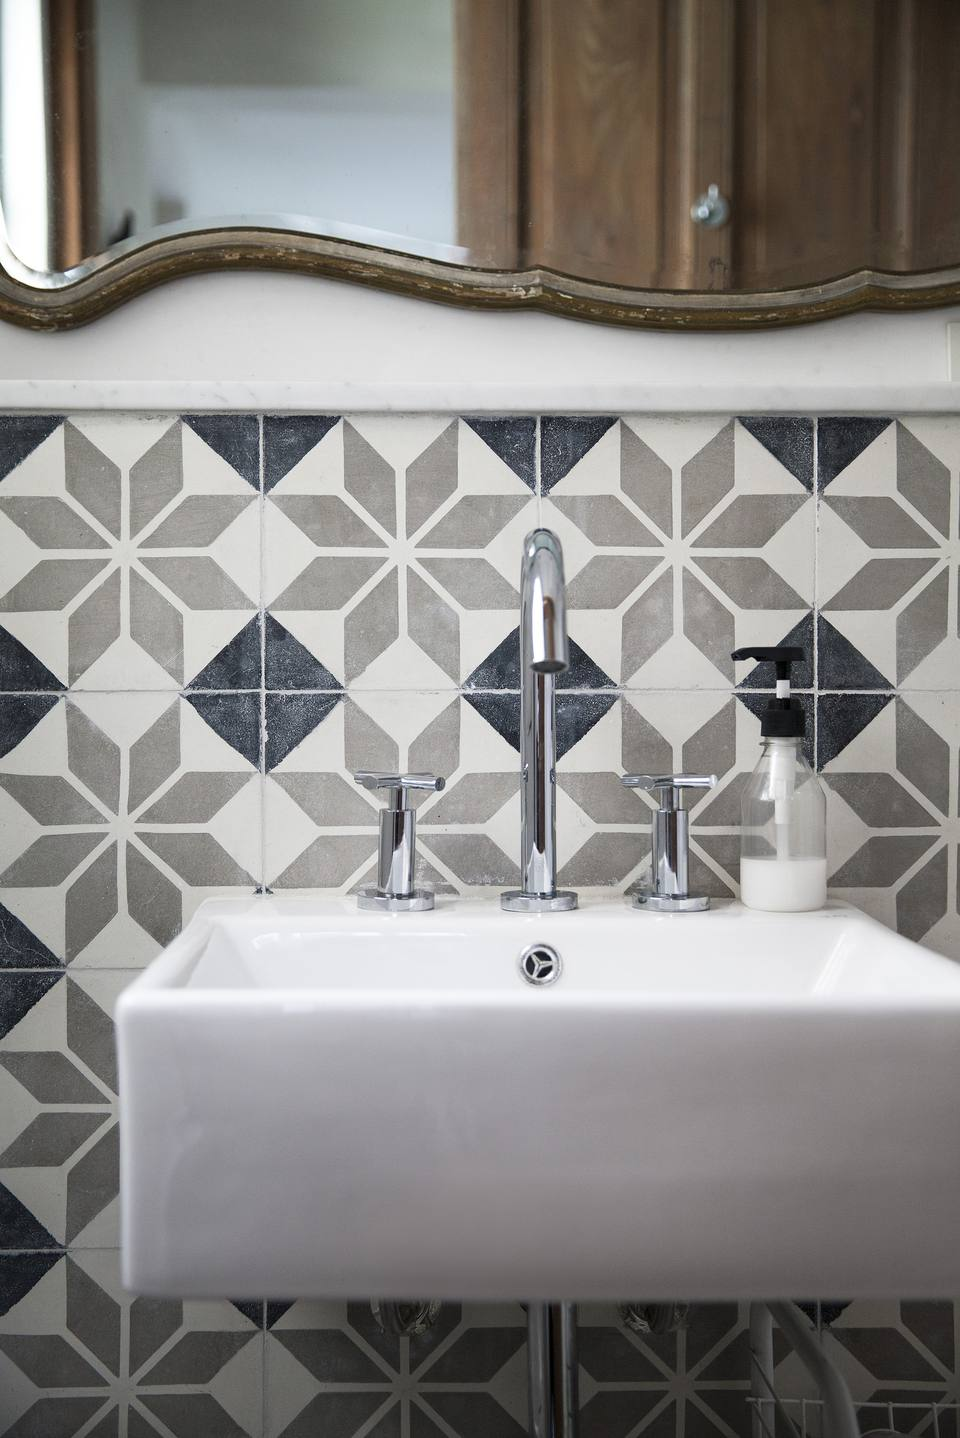 Bathroom Wall Tile: Porcelain Mosaic